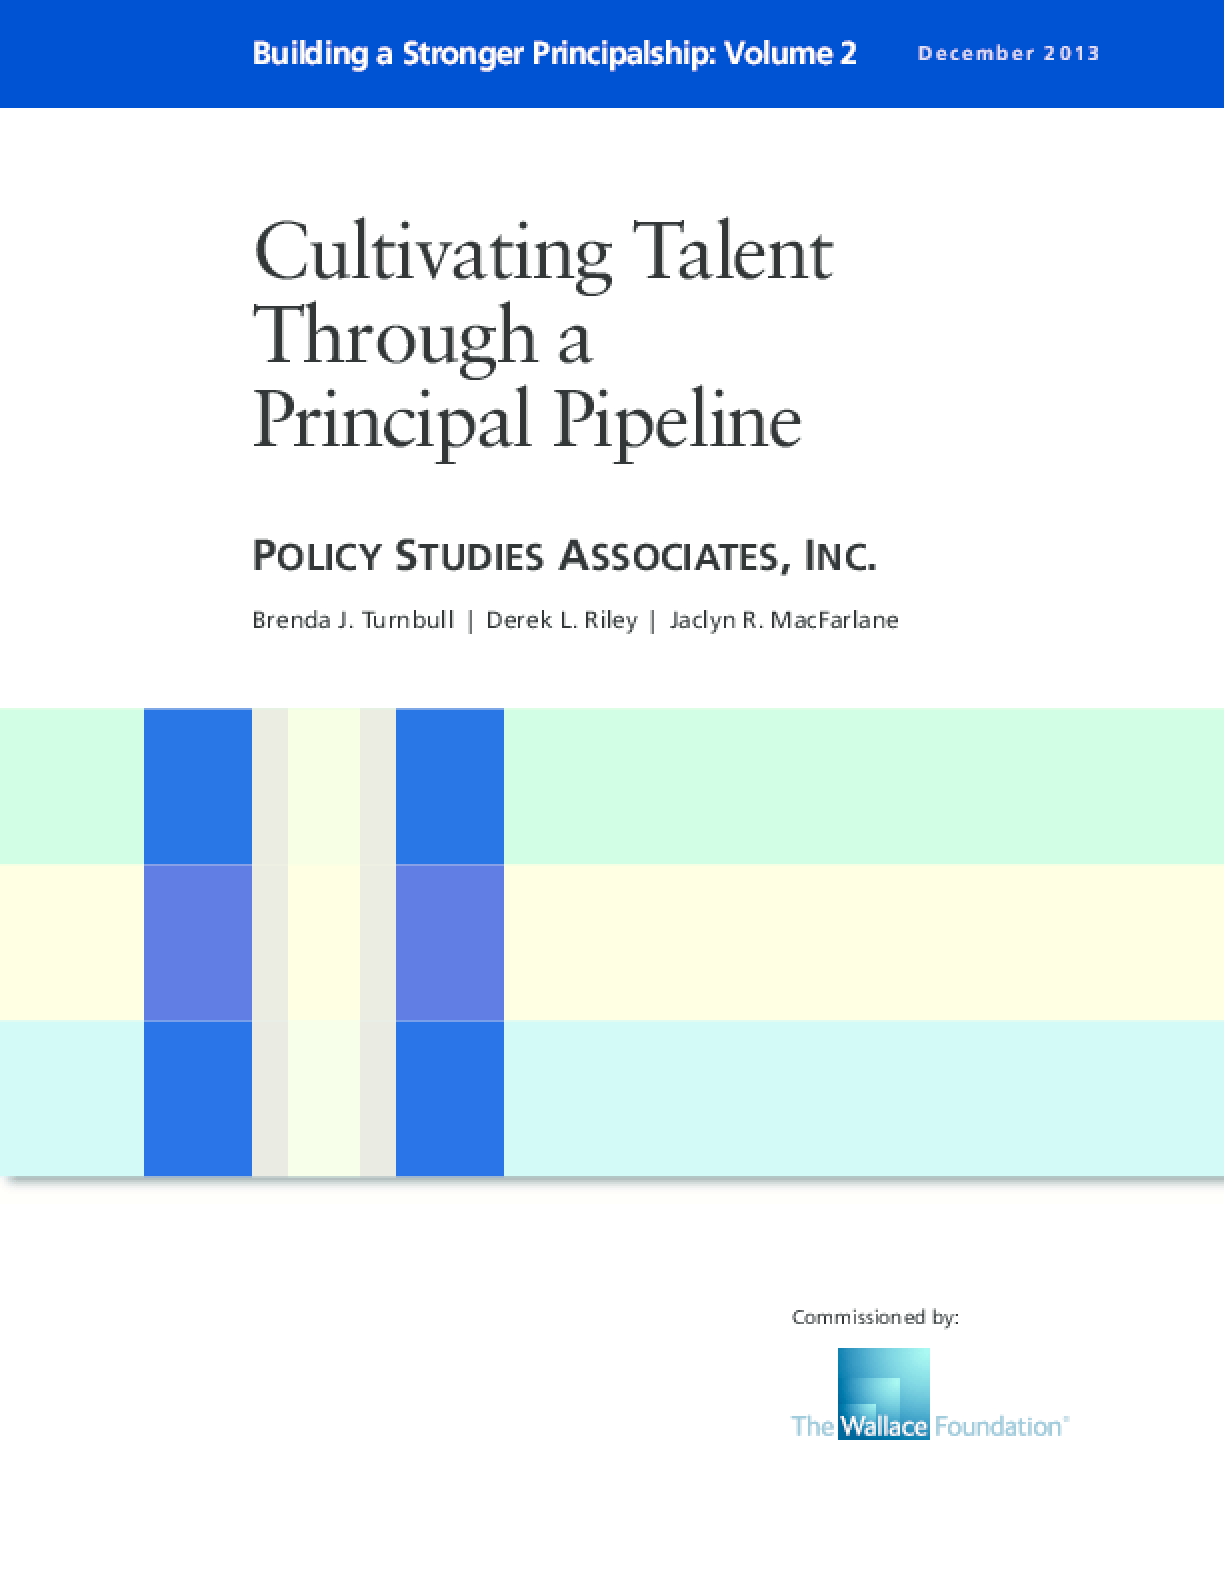 Cultivating Talent through a Principal Pipeline